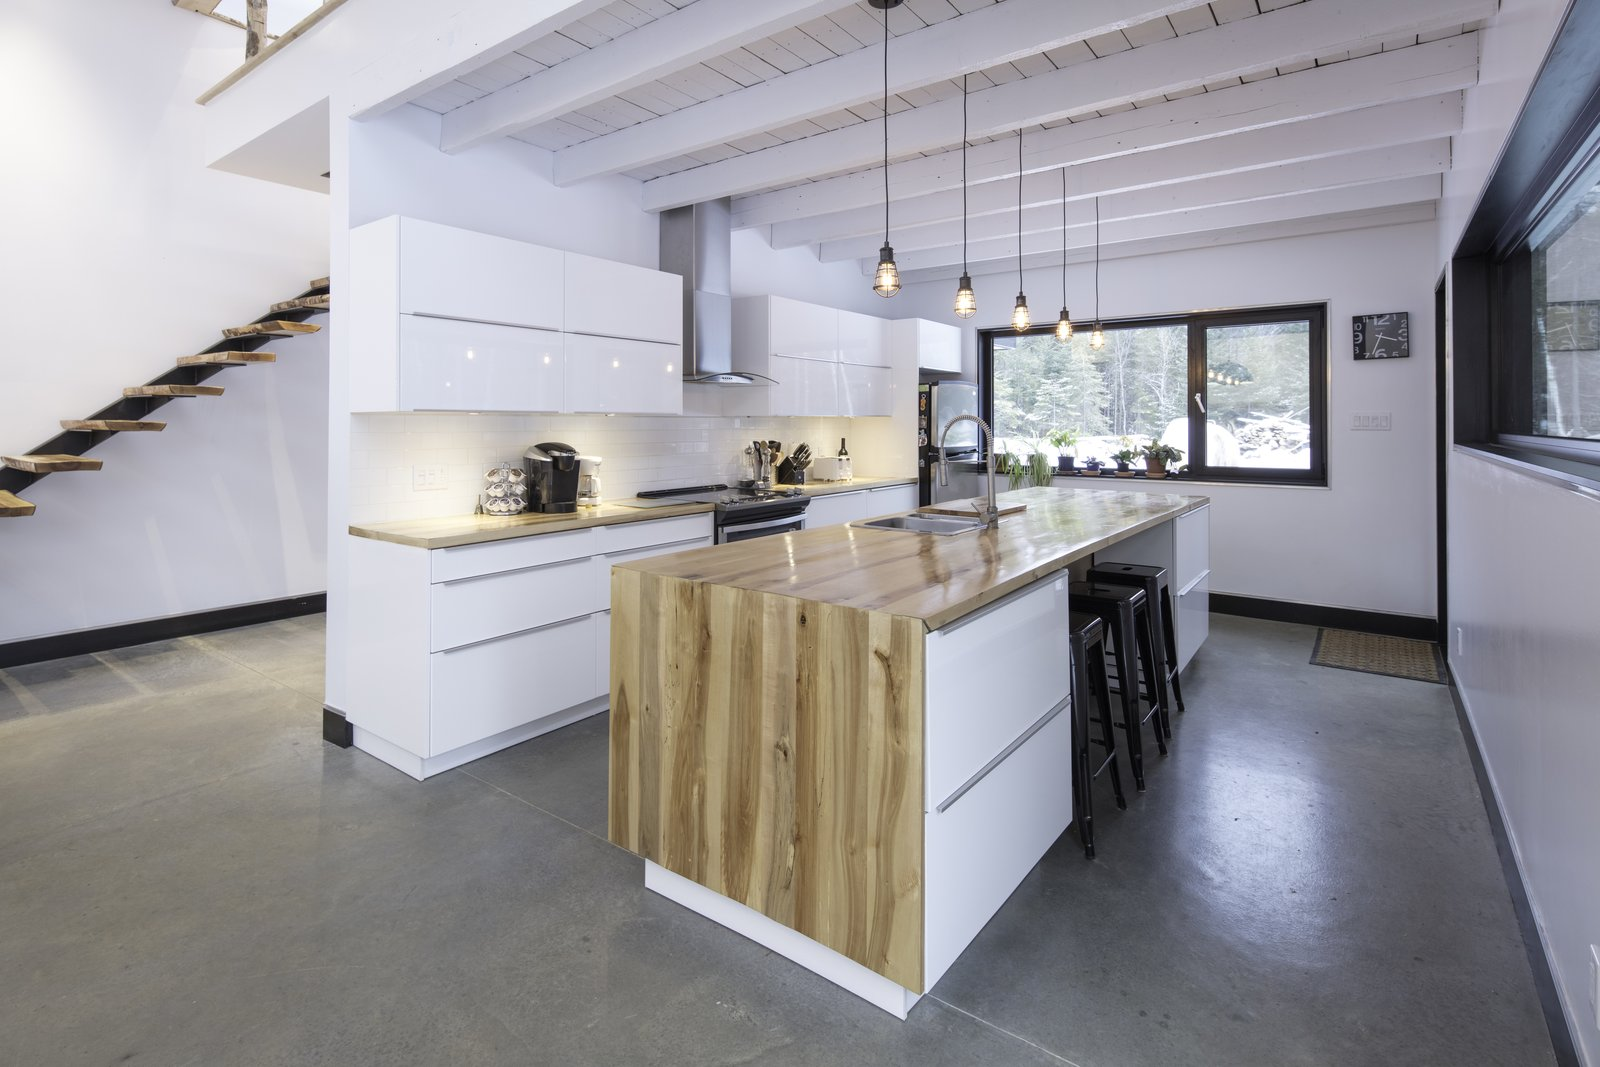 Kitchen, Wood, White, Wood, Concrete, Ceramic Tile, Pendant, Recessed, and Drop In Kitchen, all wood finishes was taken from the forest.  Best Kitchen Wood Wood Drop In Pendant Concrete Recessed Photos from Maison Lac Brûlé